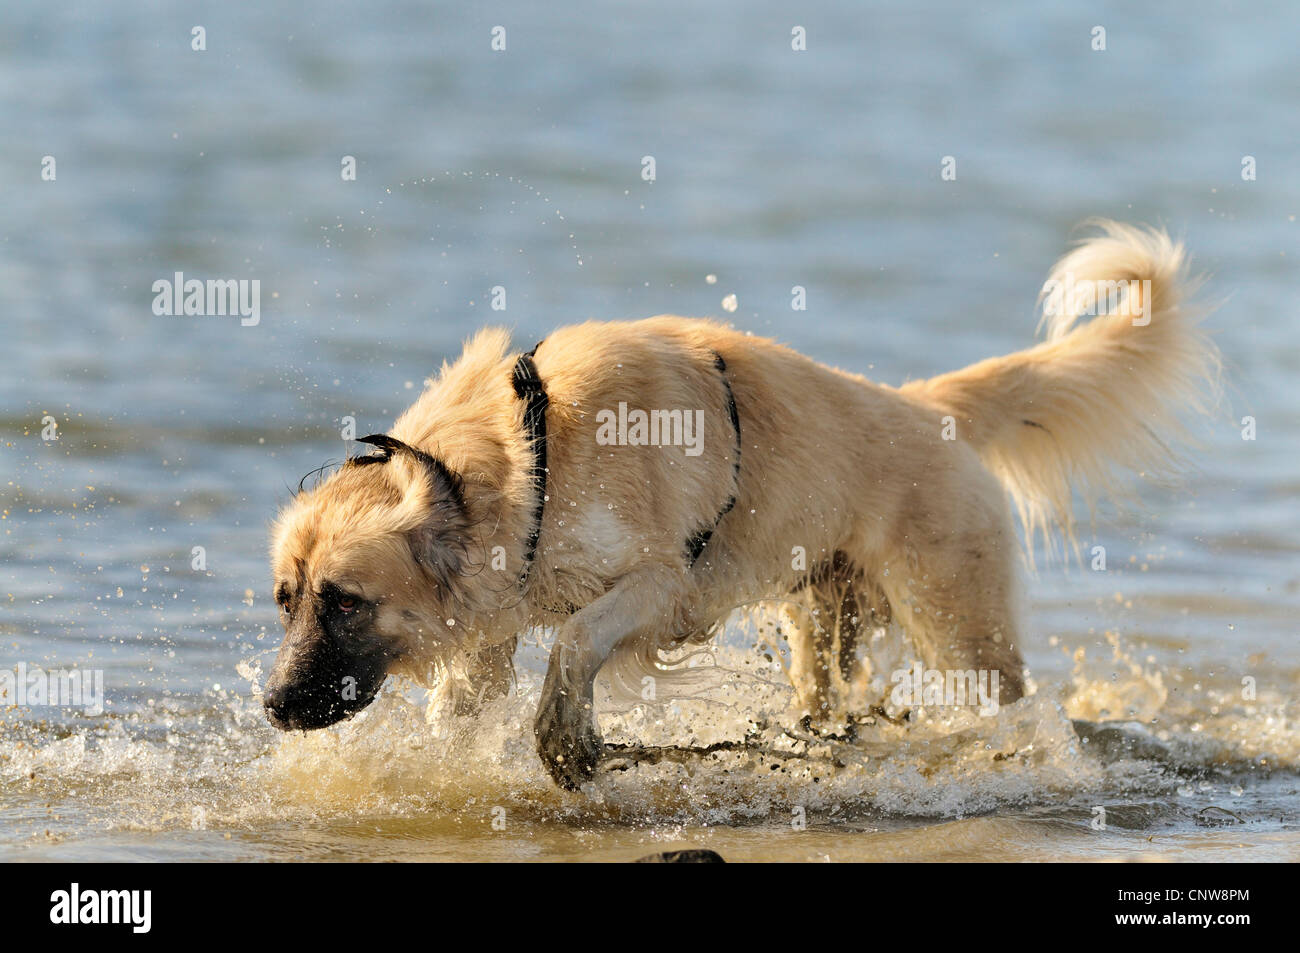 mixed breed dog (Canis lupus f. familiaris), searching for retrieving stick, Germany - Stock Image